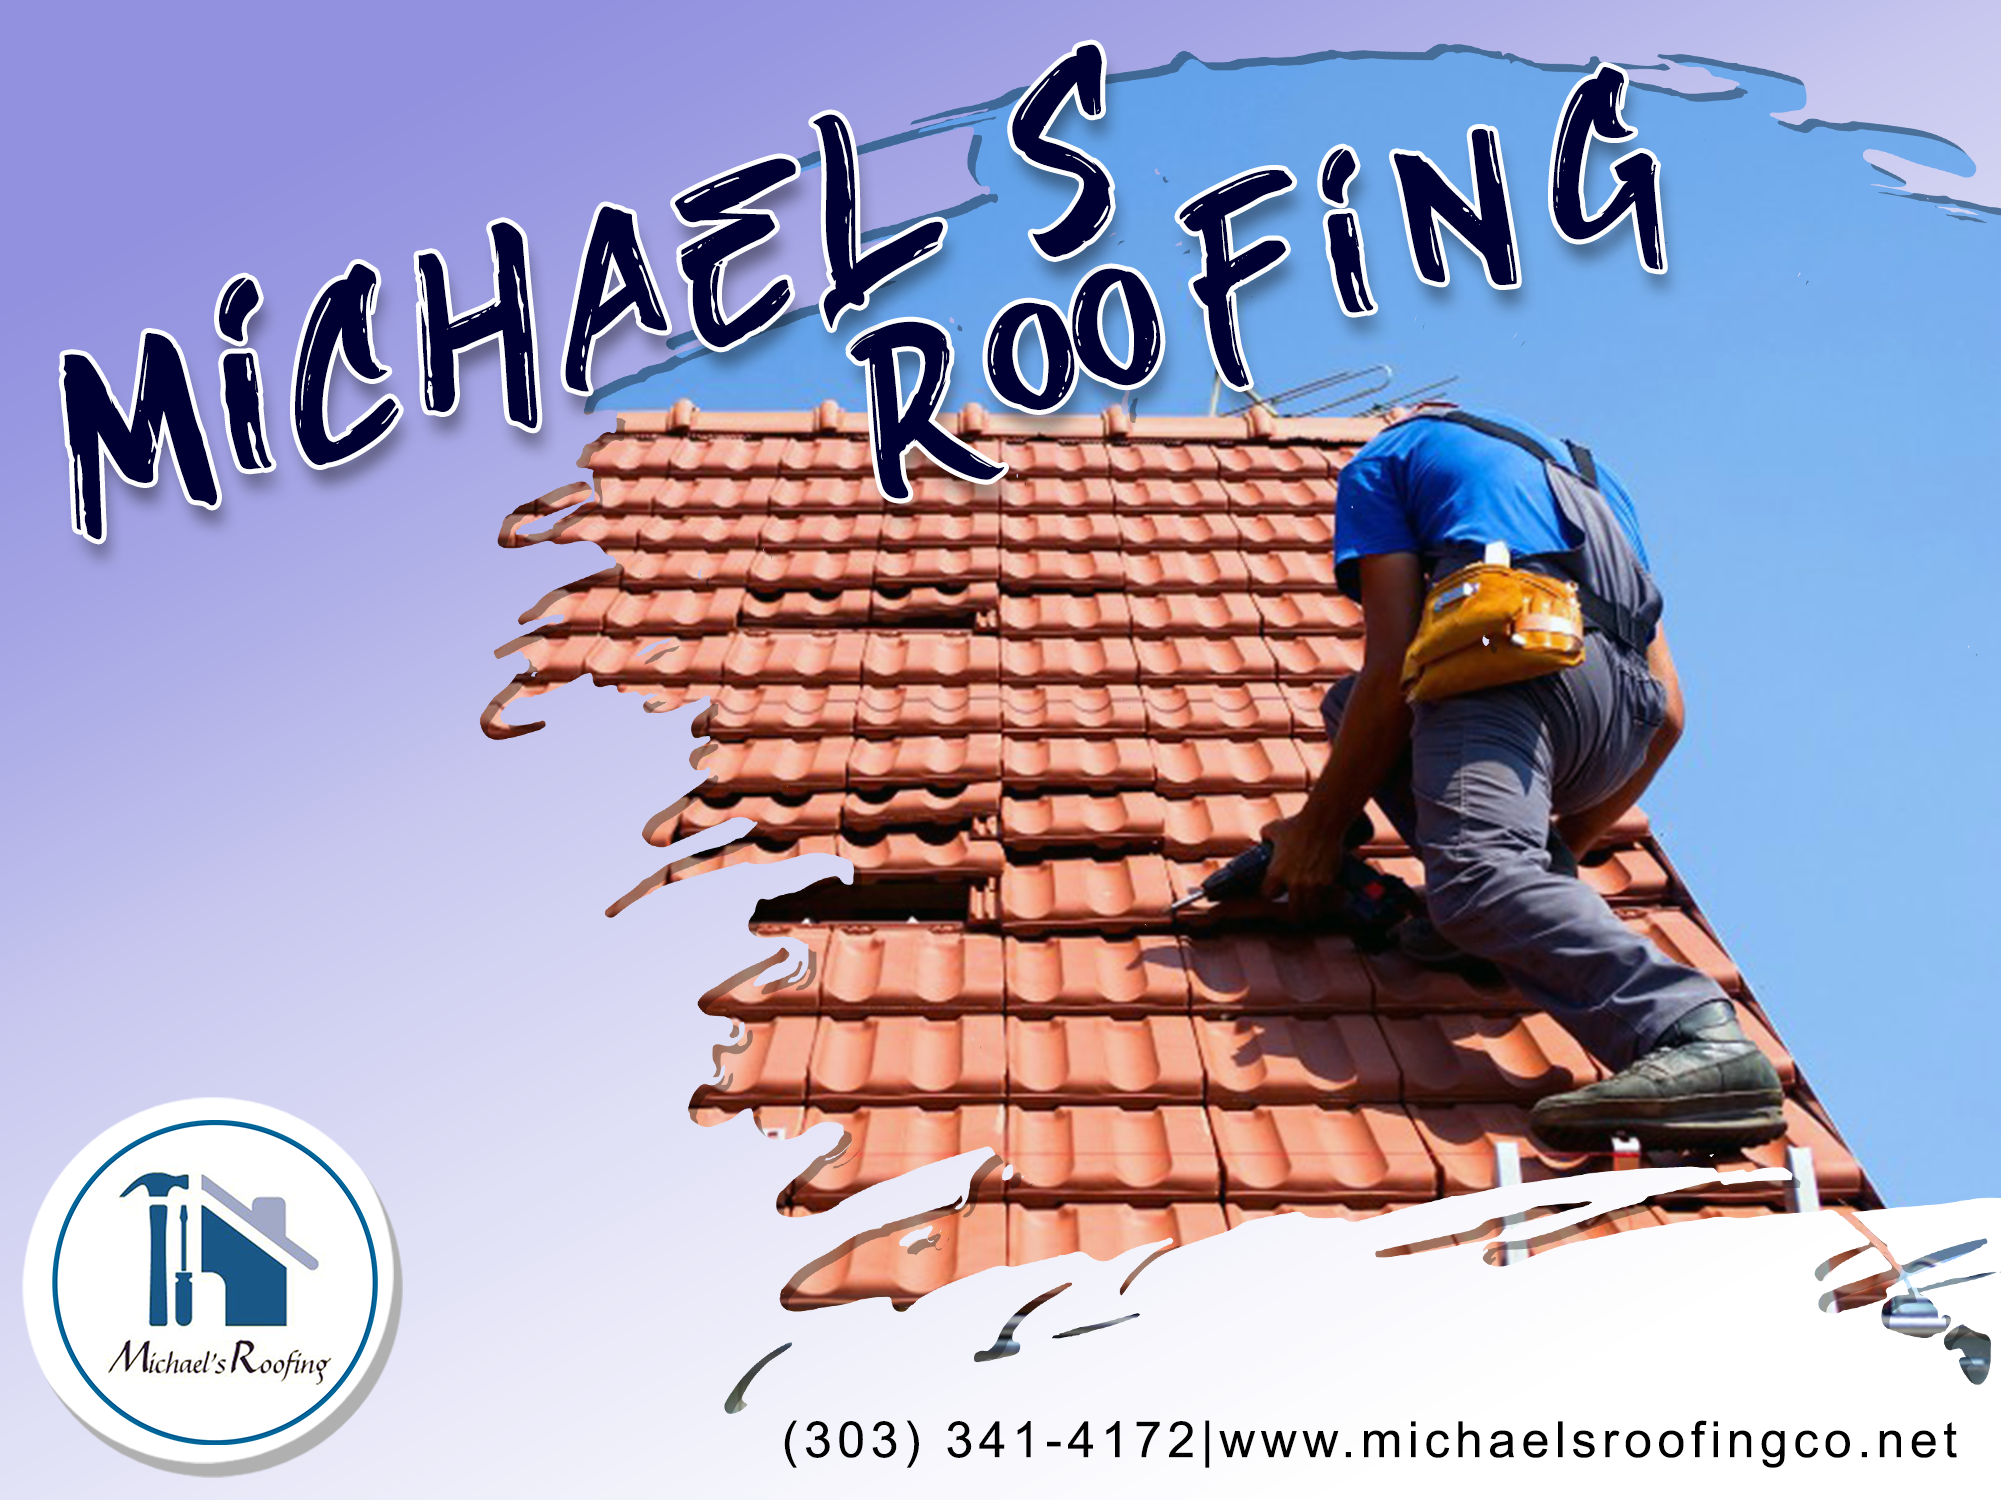 Roofing Contractor In 2020 Roofing Services Roofing Professional Roofing